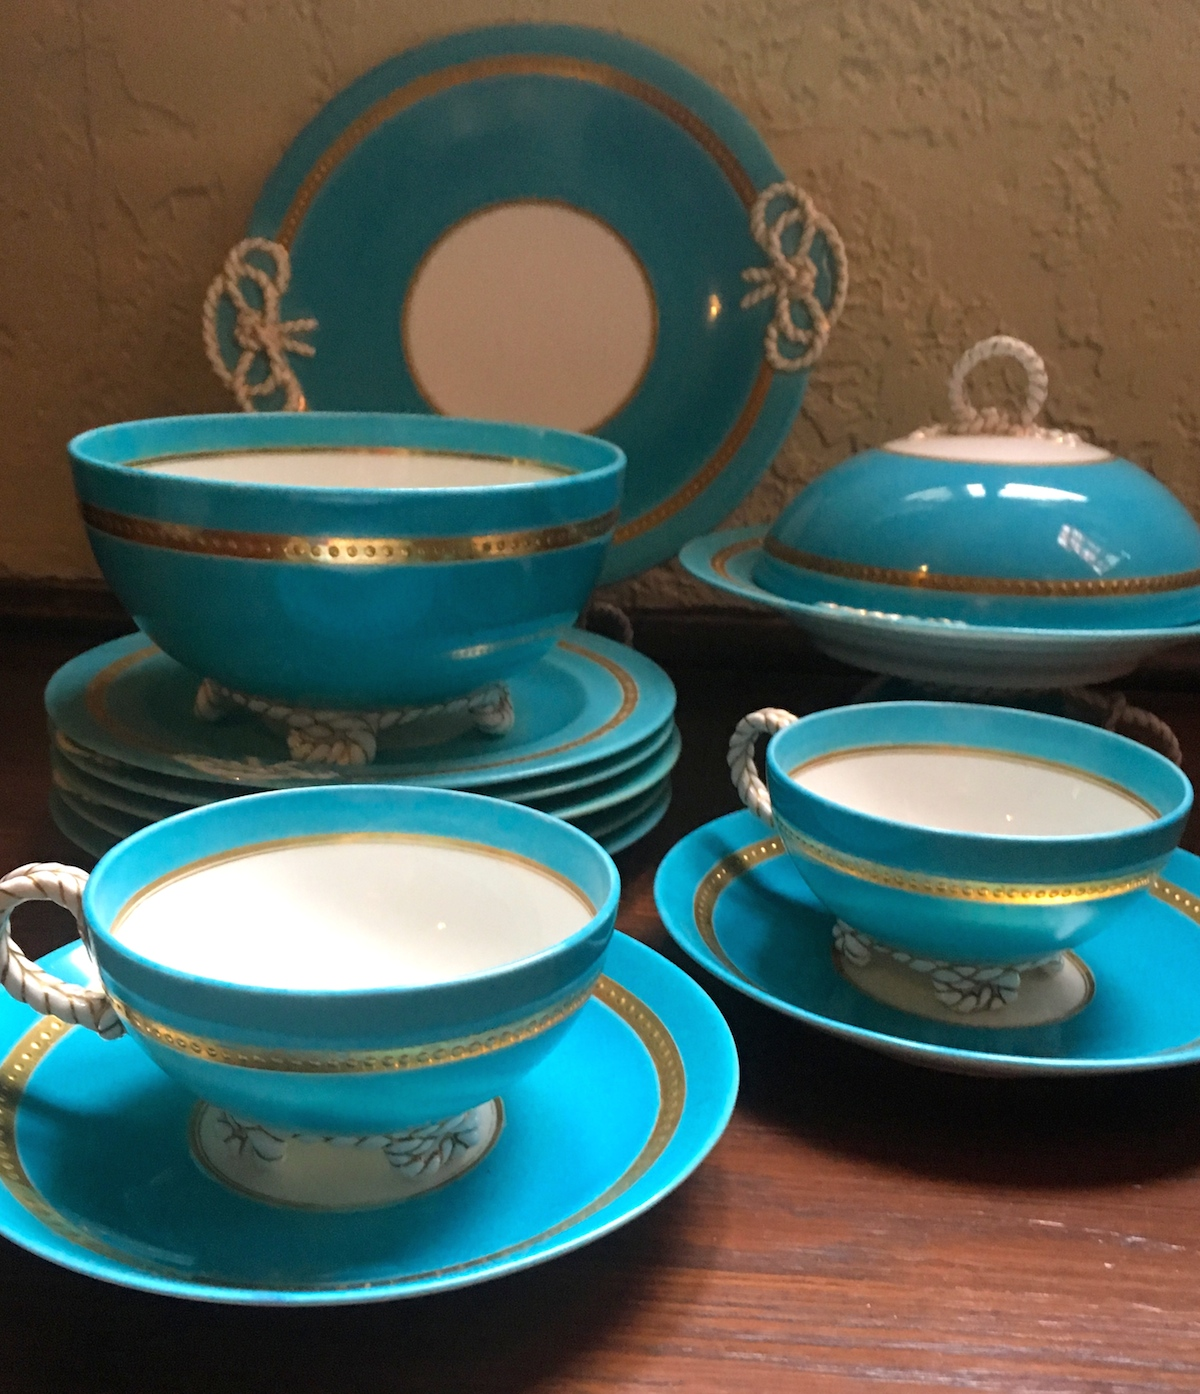 English Nautical themed lunch set - the blue hints that it might have been made by Minton